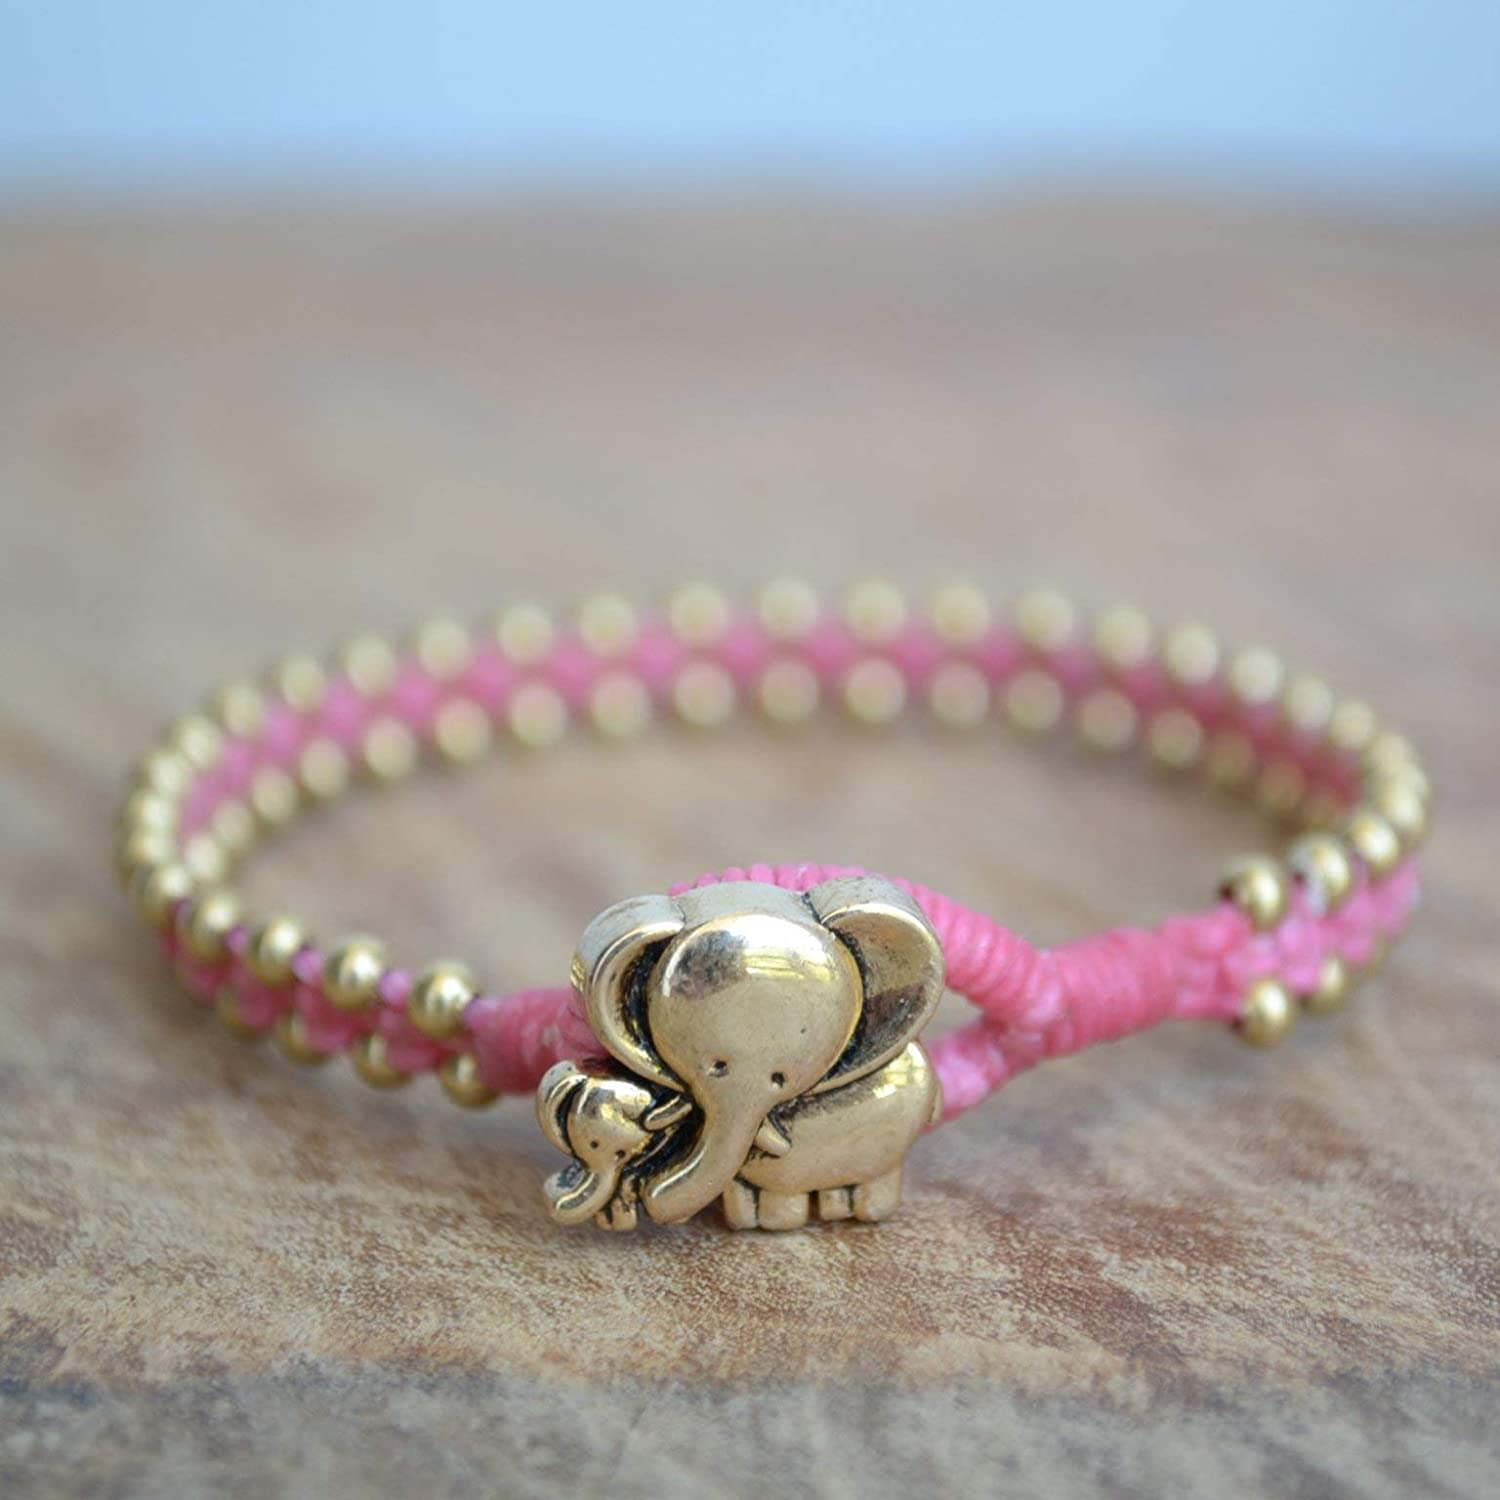 Good Fortune Elephant Charm Bracelet For Teenage Girls Or New Mom - Pink